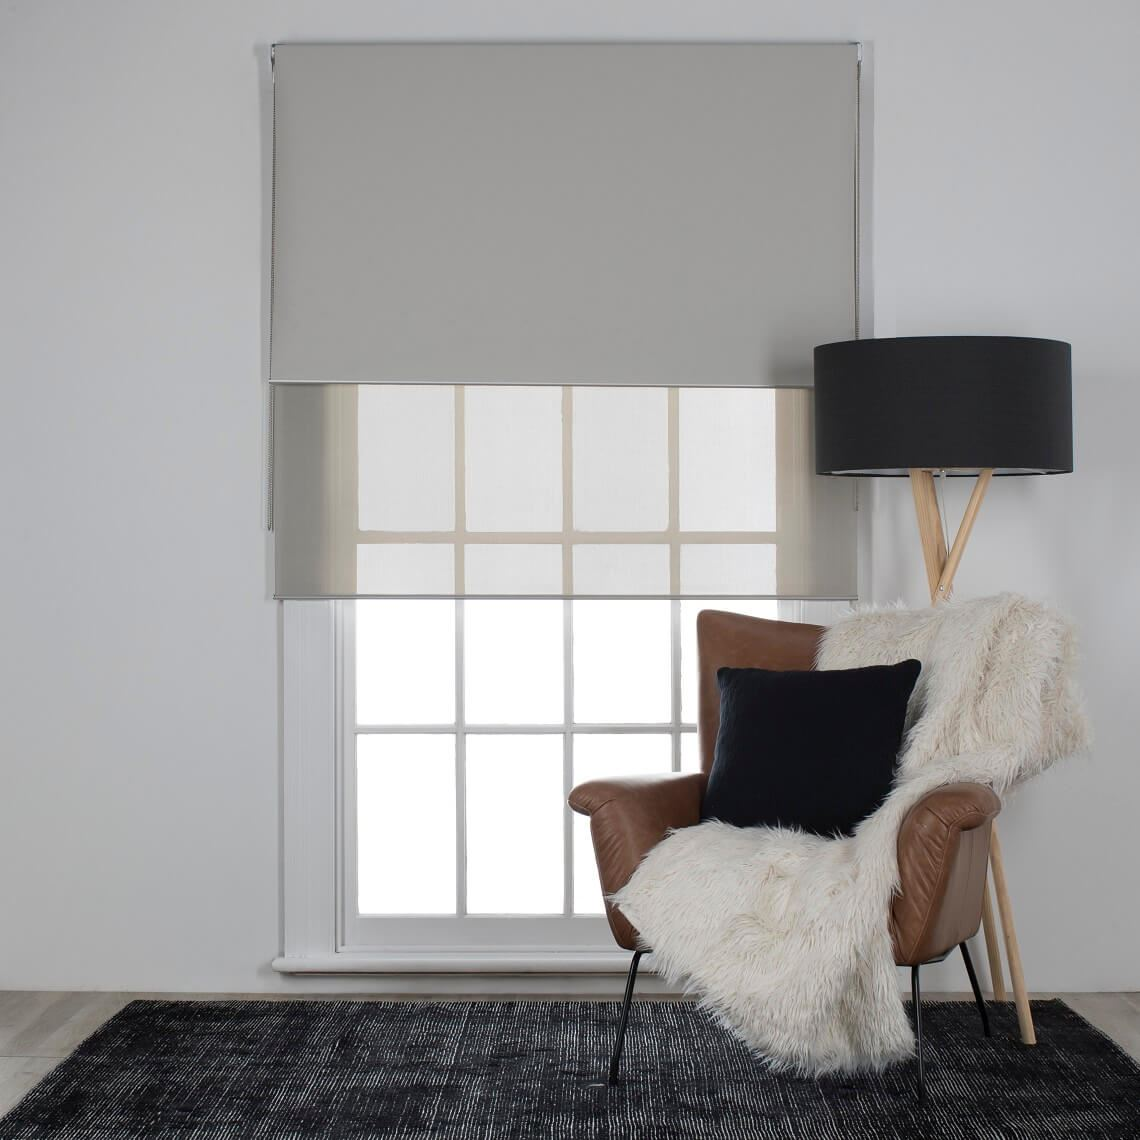 Aurora Set Of 2 Duo Roller Blind Size W 60cm x D 0cm x H 210cm in Almond 100% Polyester Freedom by Freedom, a Curtains for sale on Style Sourcebook